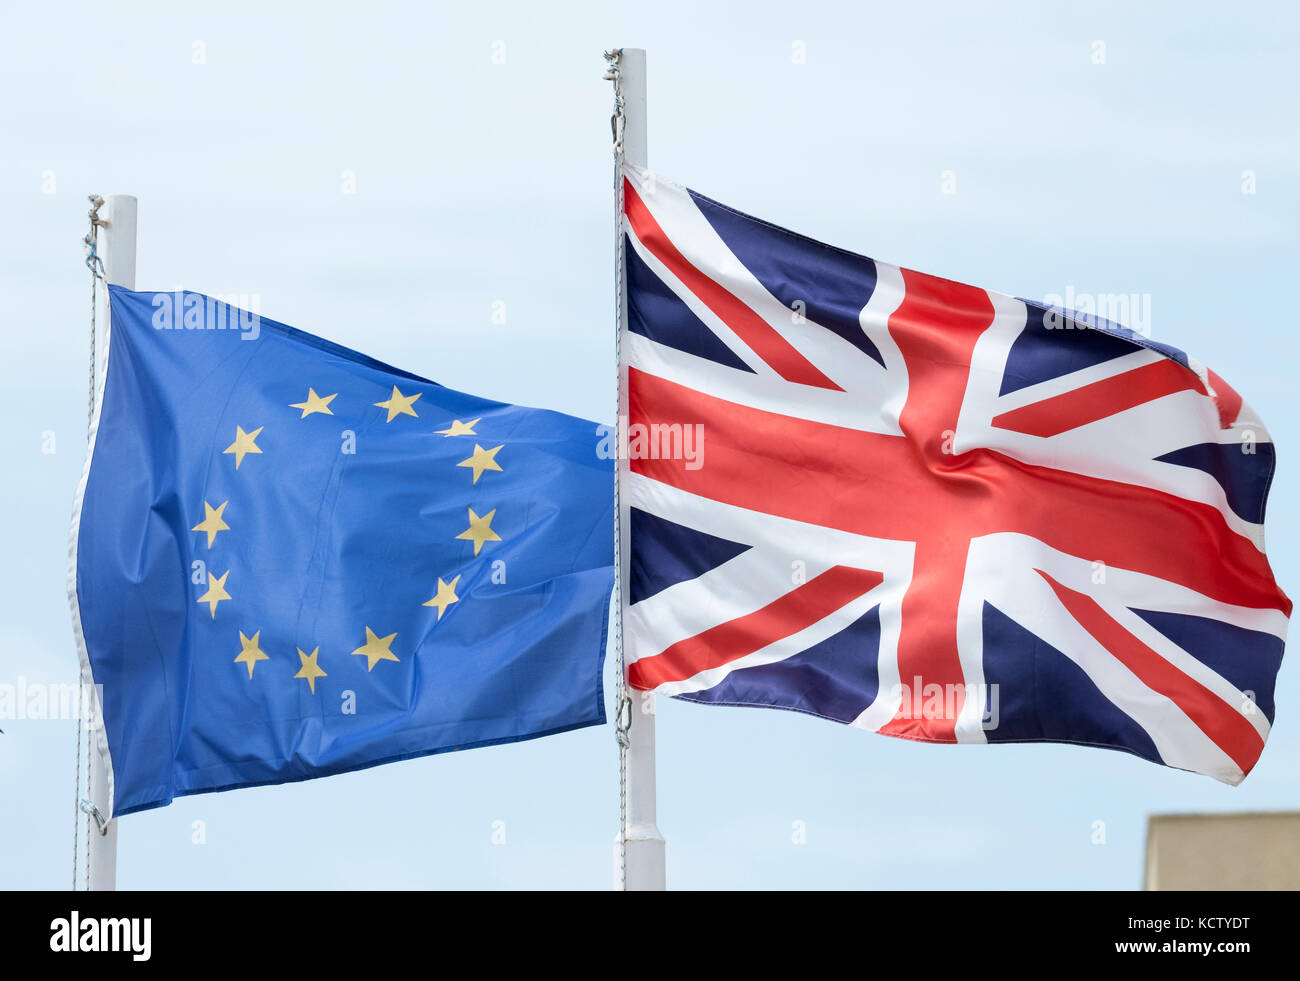 The European Union and British (Union Jack)  flags fly side by side in Cyprus. - Stock Image